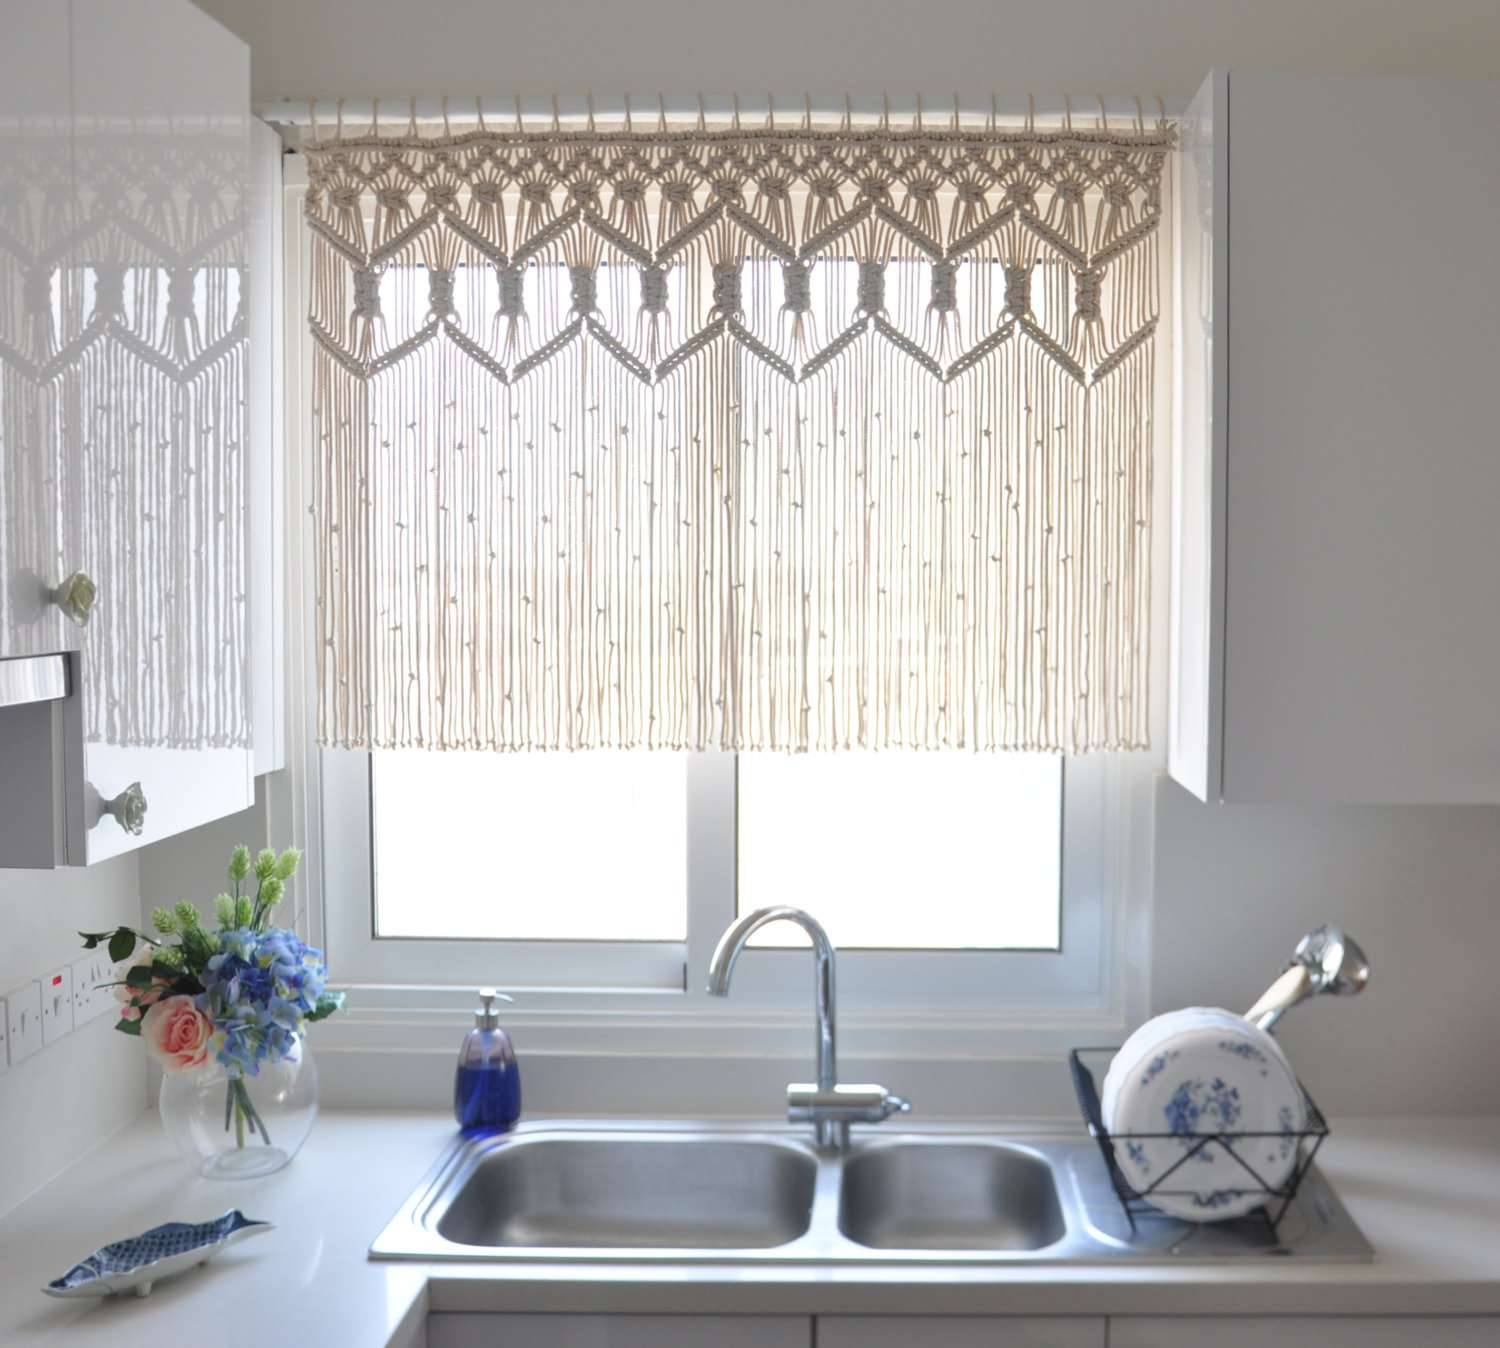 kitchen curtains modern and contemporary designs best images window farmhouse valances sets ideas treatments decorating curtain concept